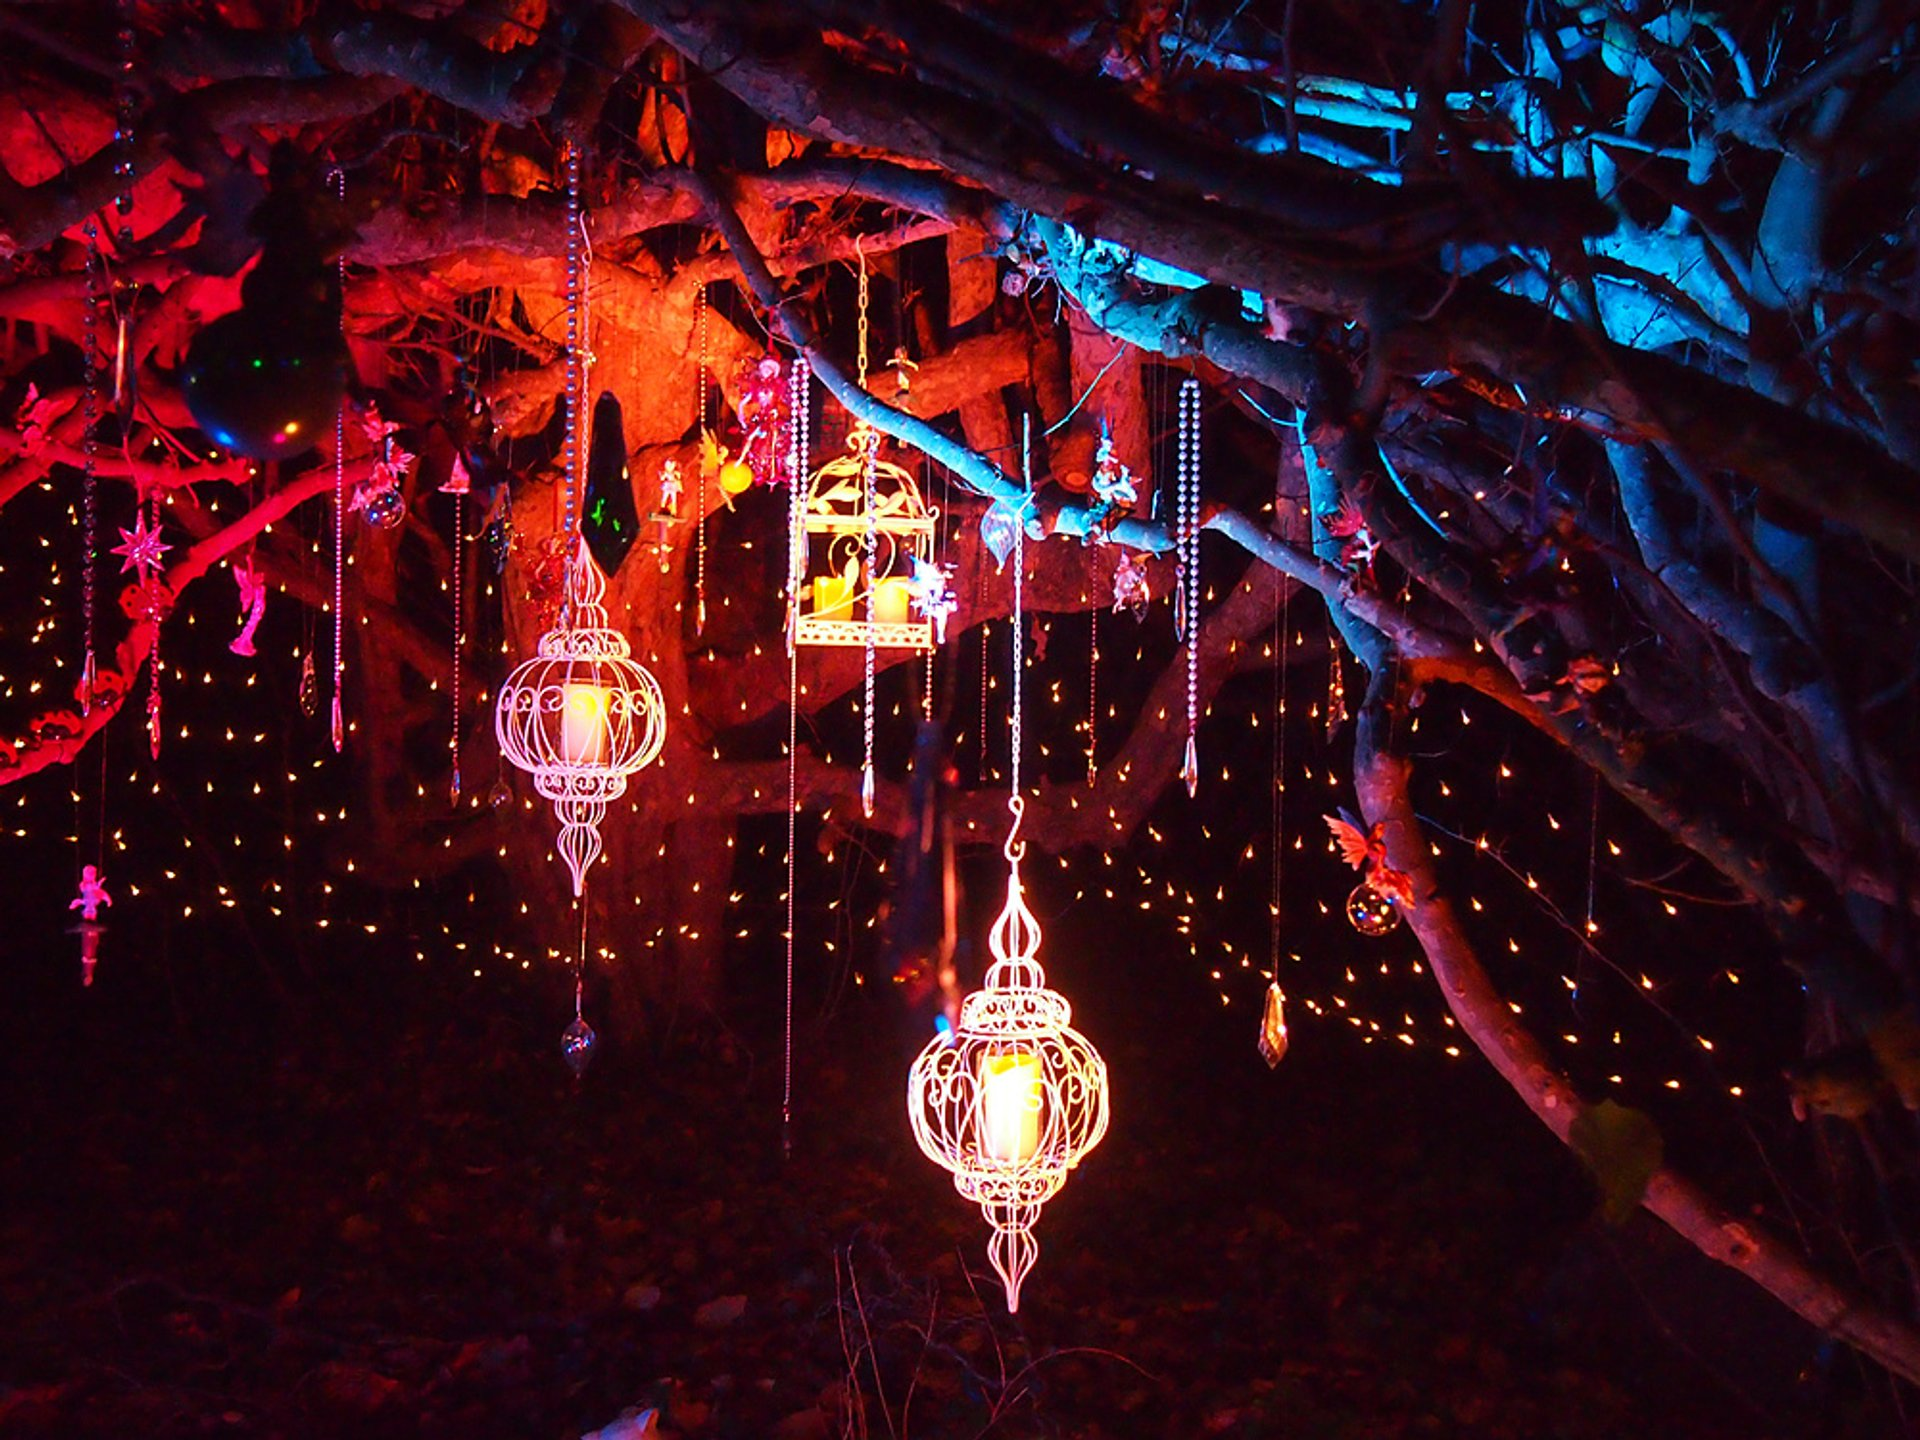 Enchanted Woodland at Syon Park in London - Best Season 2019